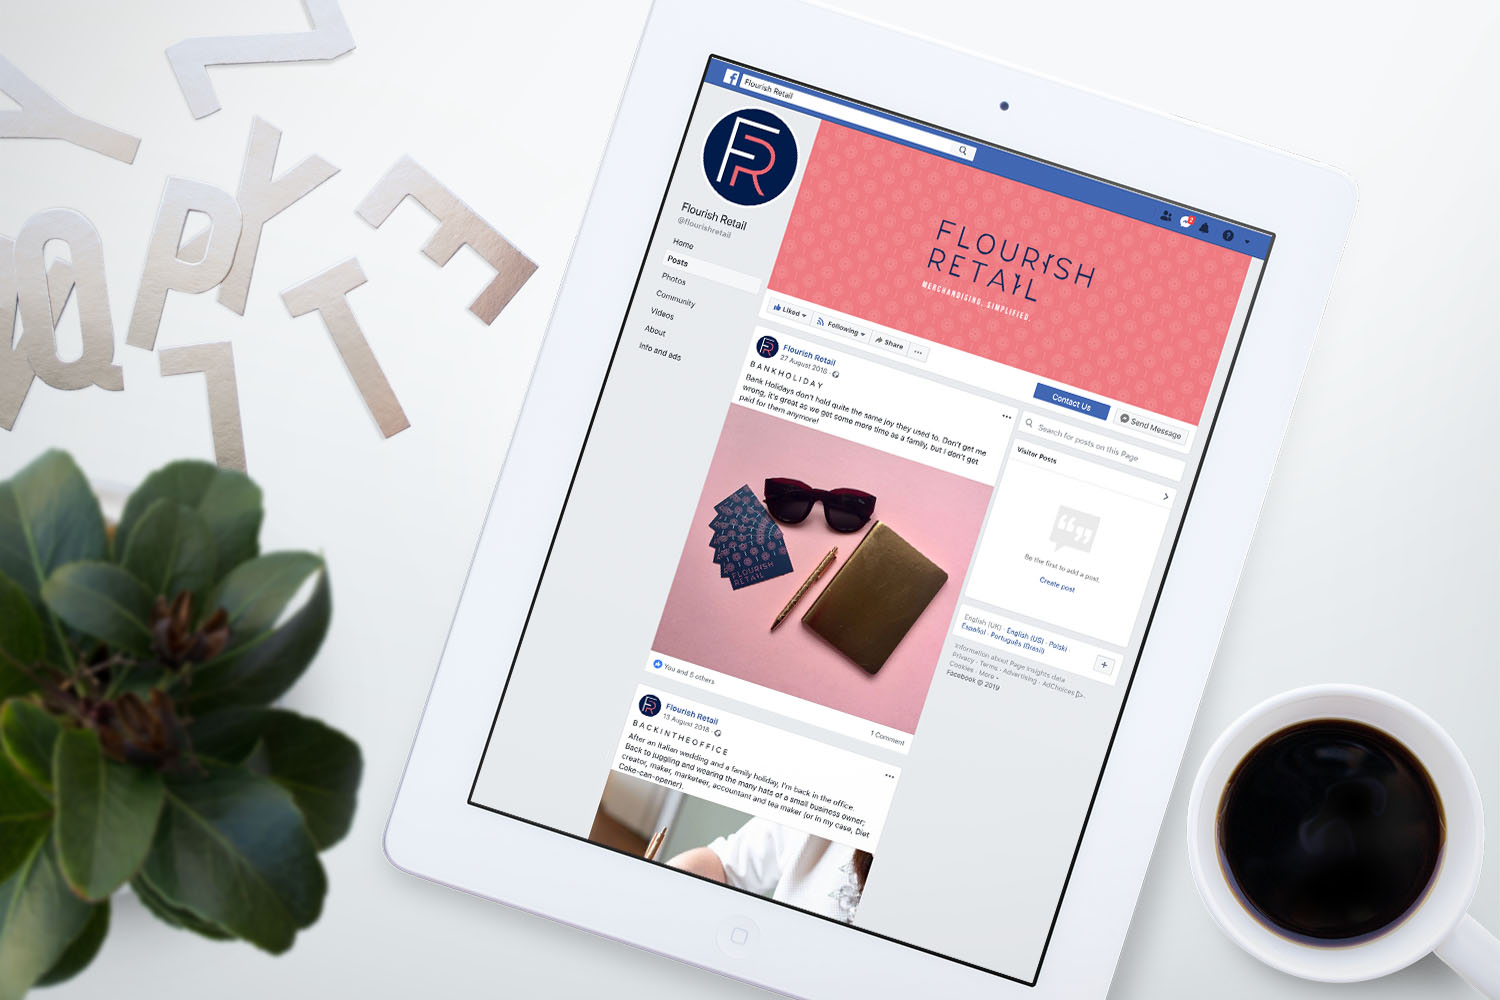 Portfolio project: Flourish Retail Facebook cover social profile design | Beehive Green Design Studio